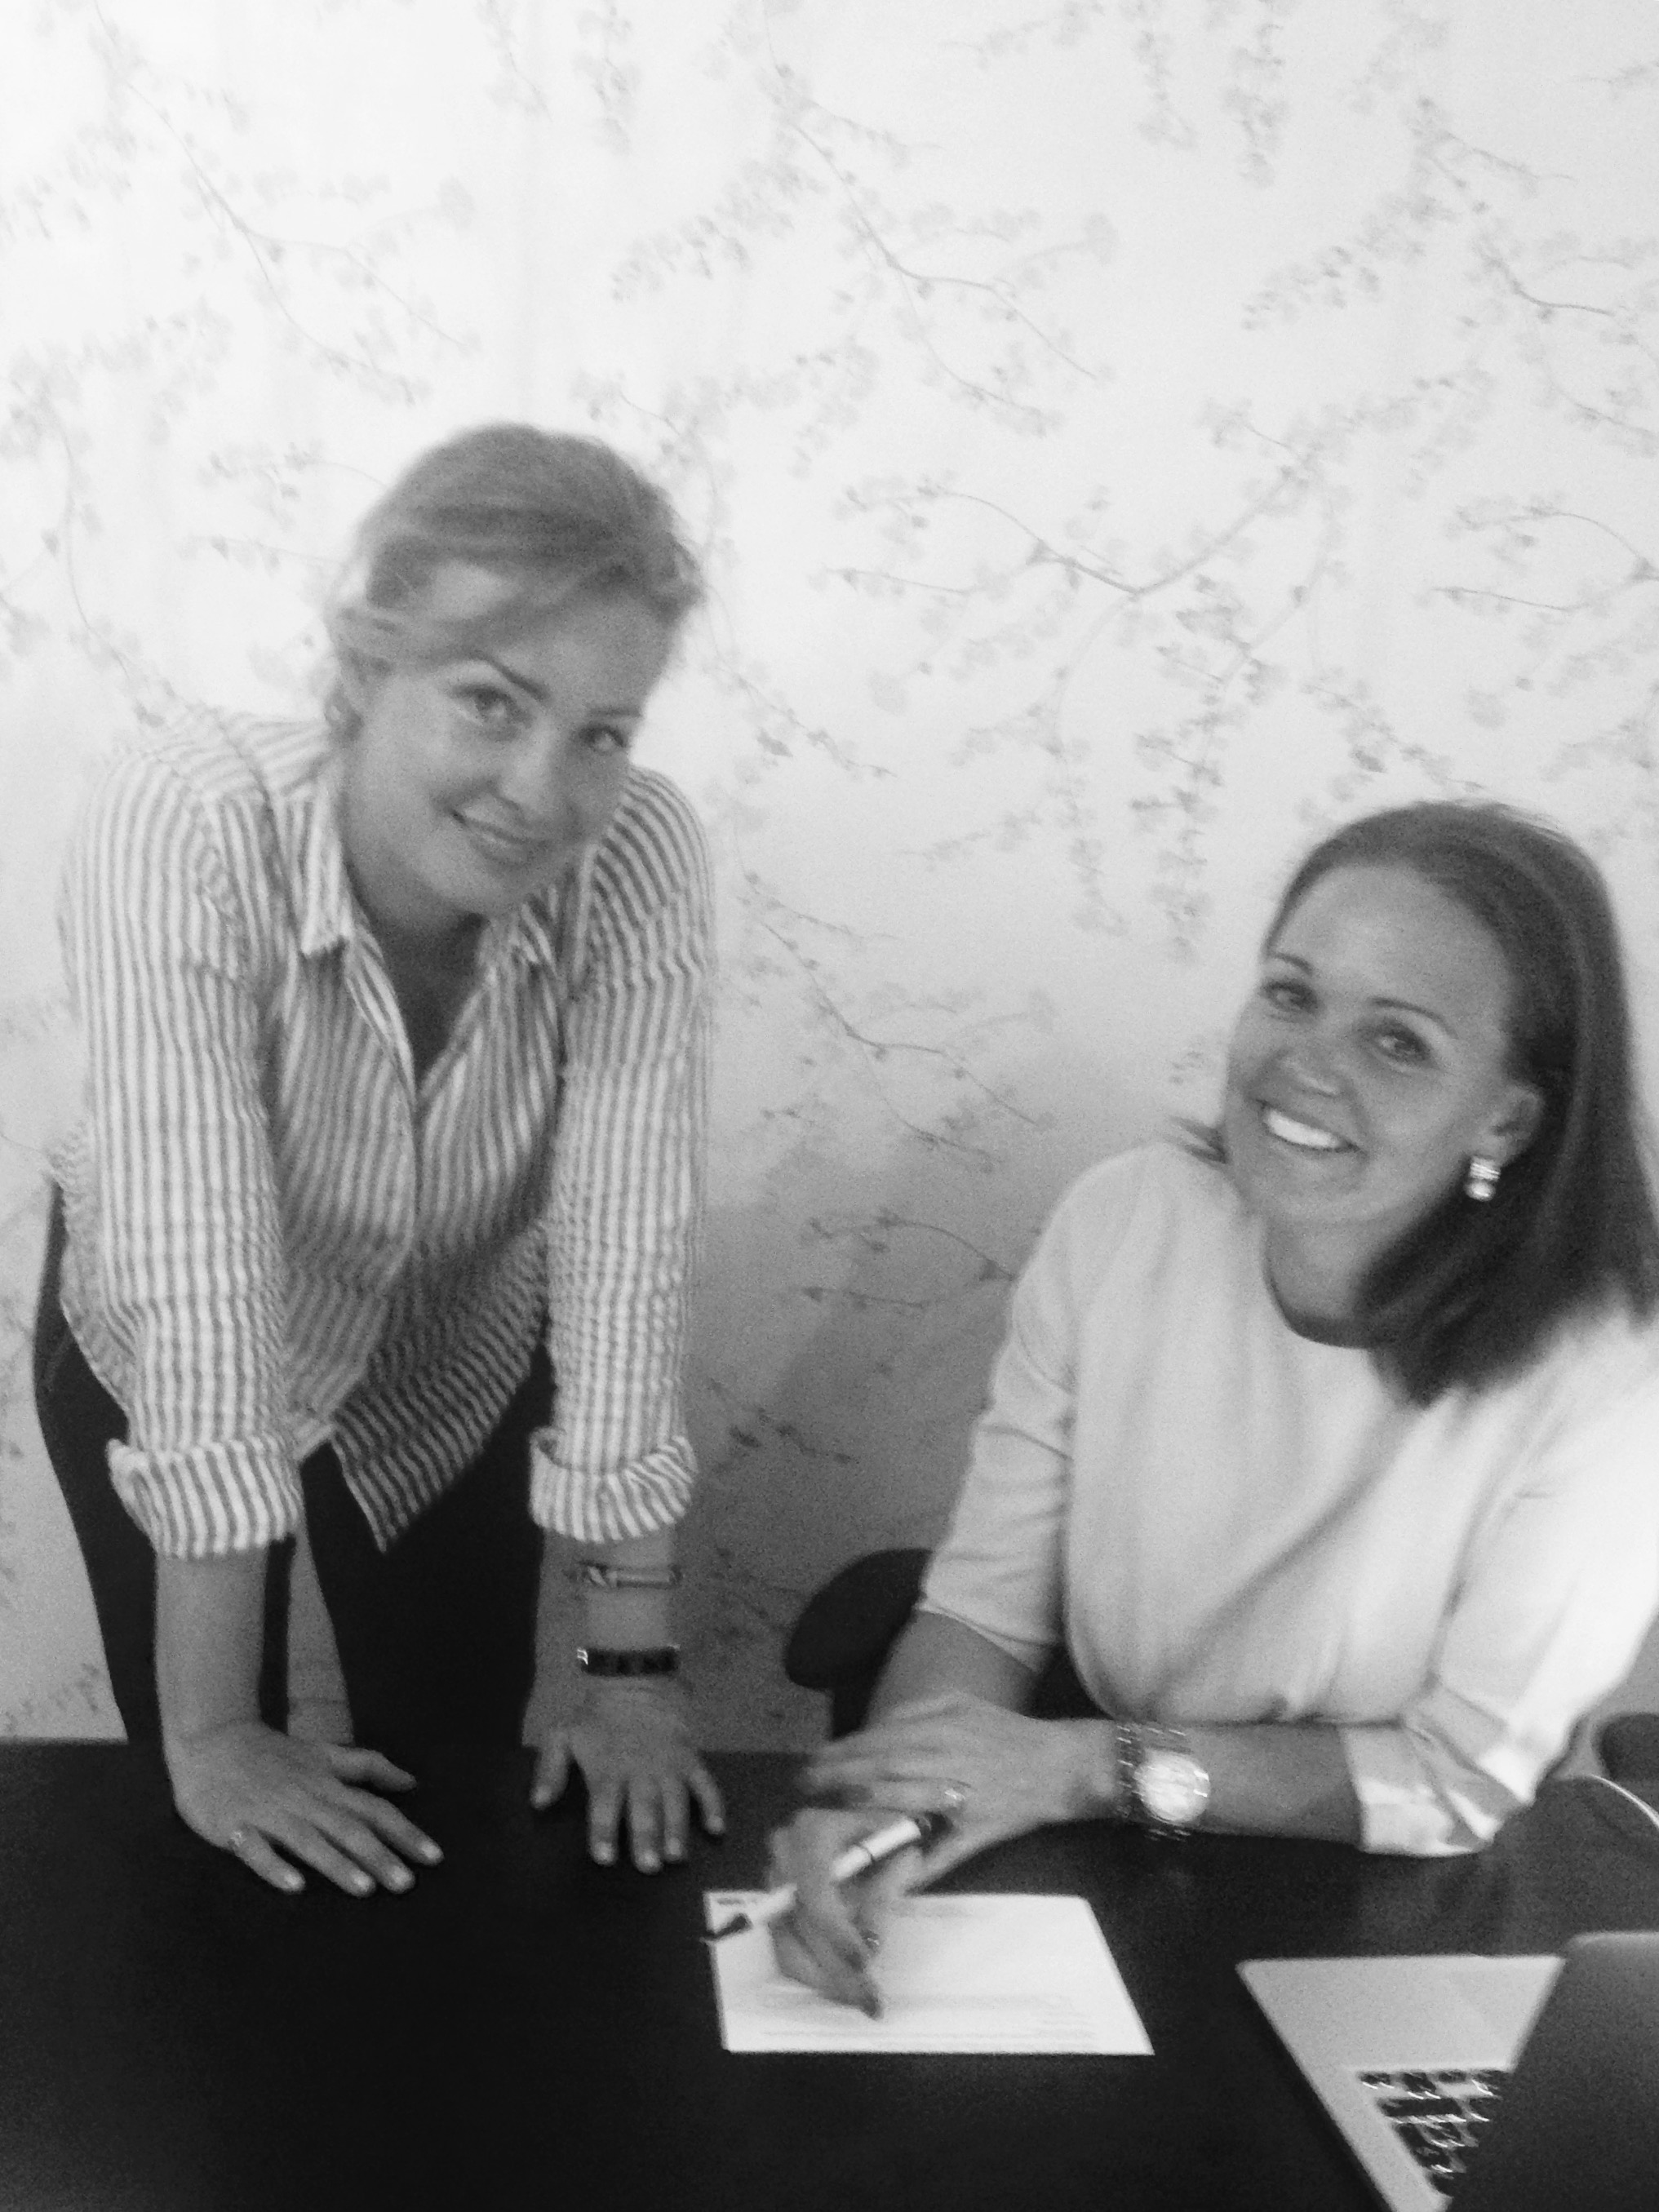 Stine Kærn Simonsen, Project Manager Classic Wedding Location & Christel Winther, CEO The Wedding Company